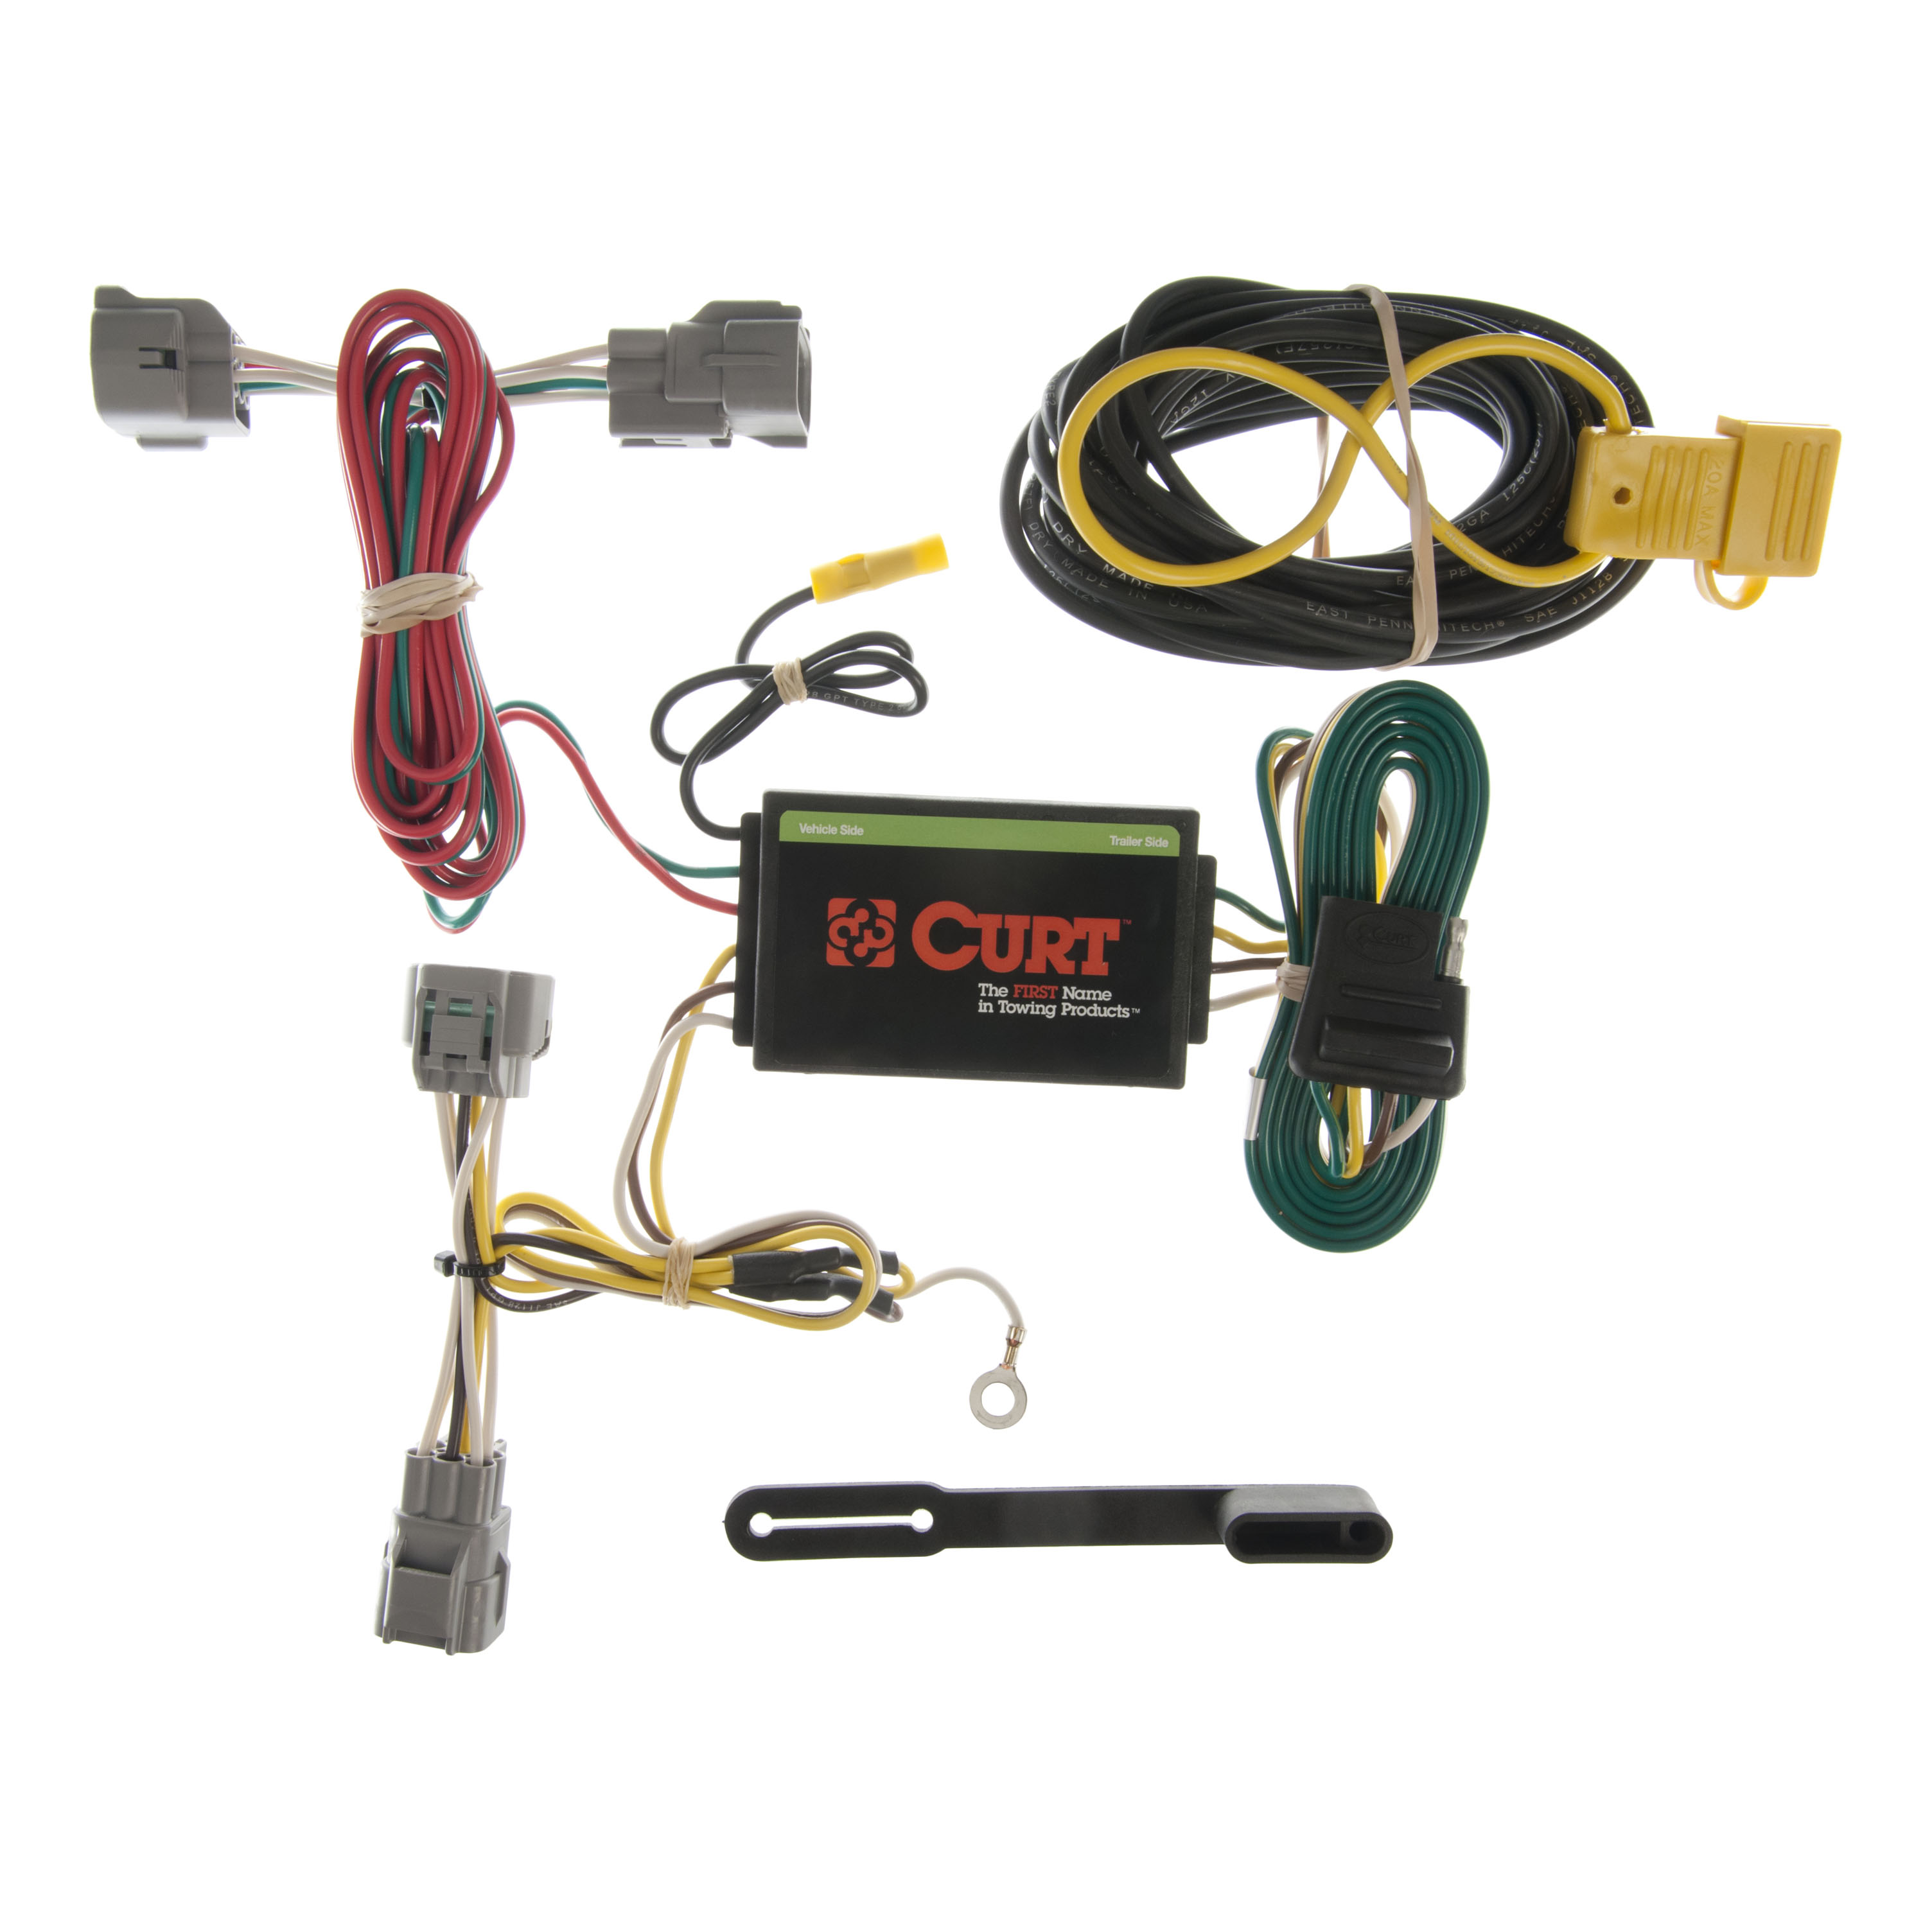 Jeep Trailer Wiring 98 Trusted Diagrams Curt Vehicle To Harness 55349 For 94 Grand Light 1996 Xj